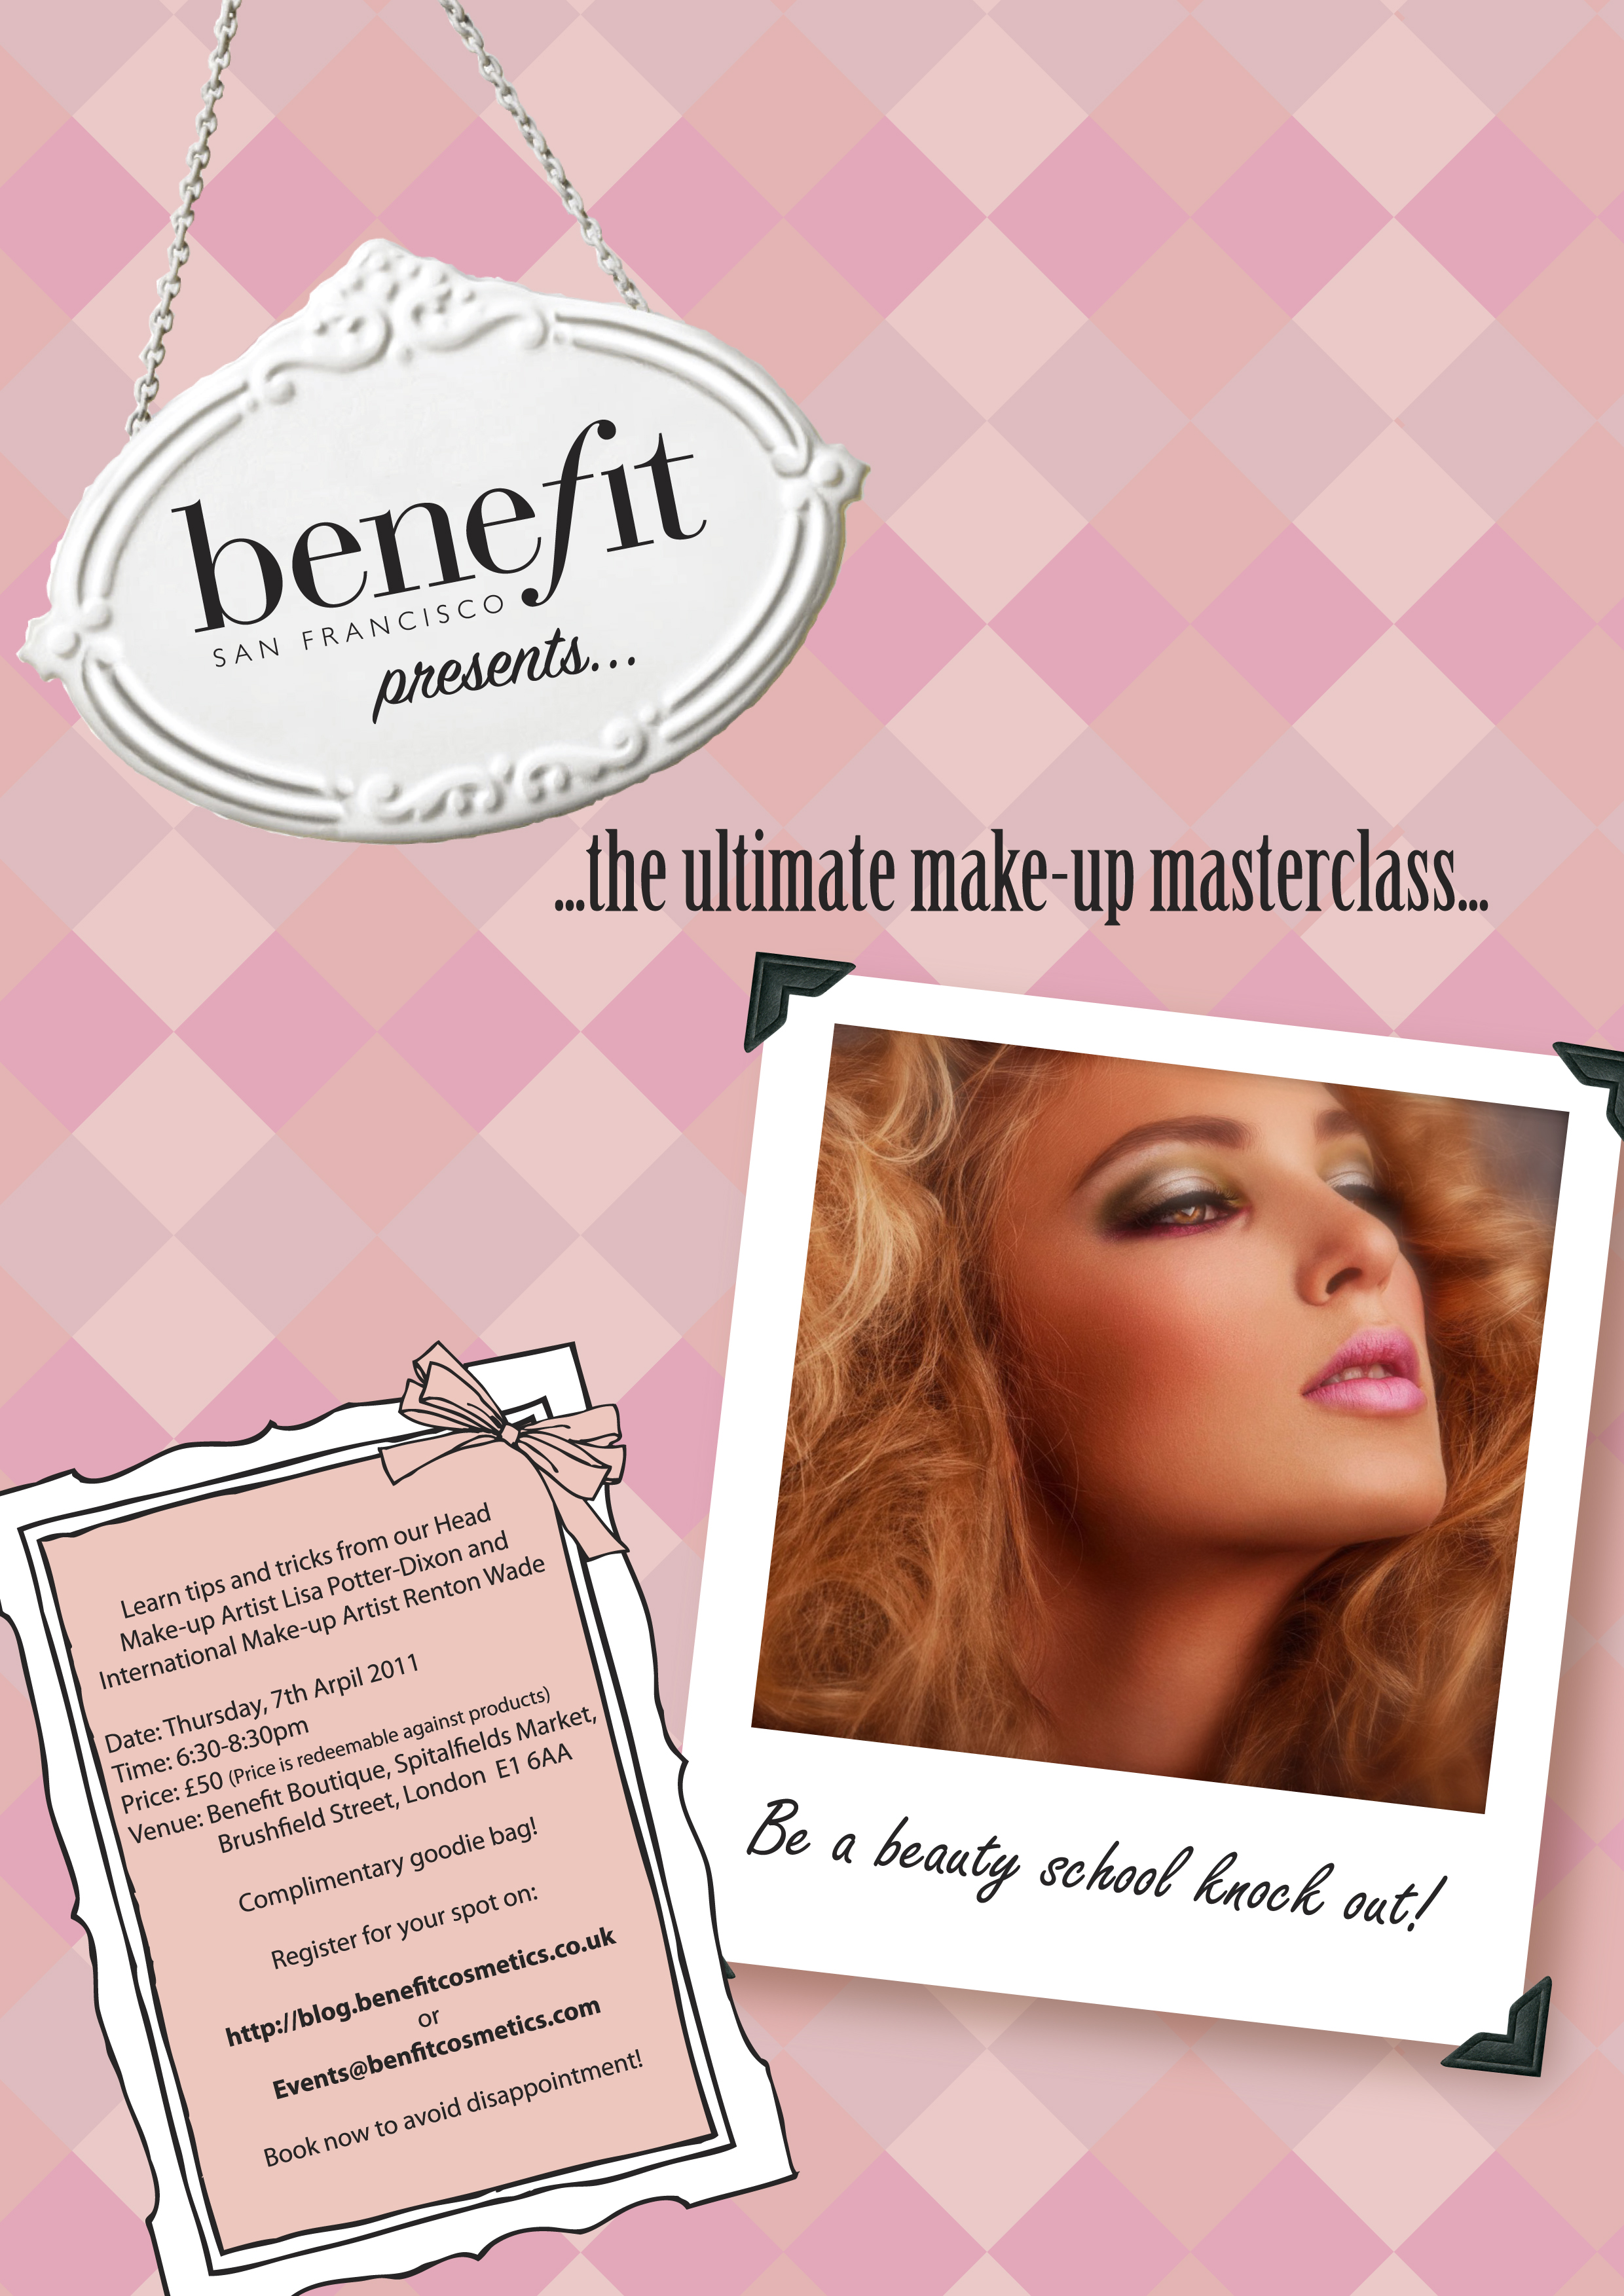 SIGNUP: Get Personal! Masterclass with the Benefit ProfessionalsThur